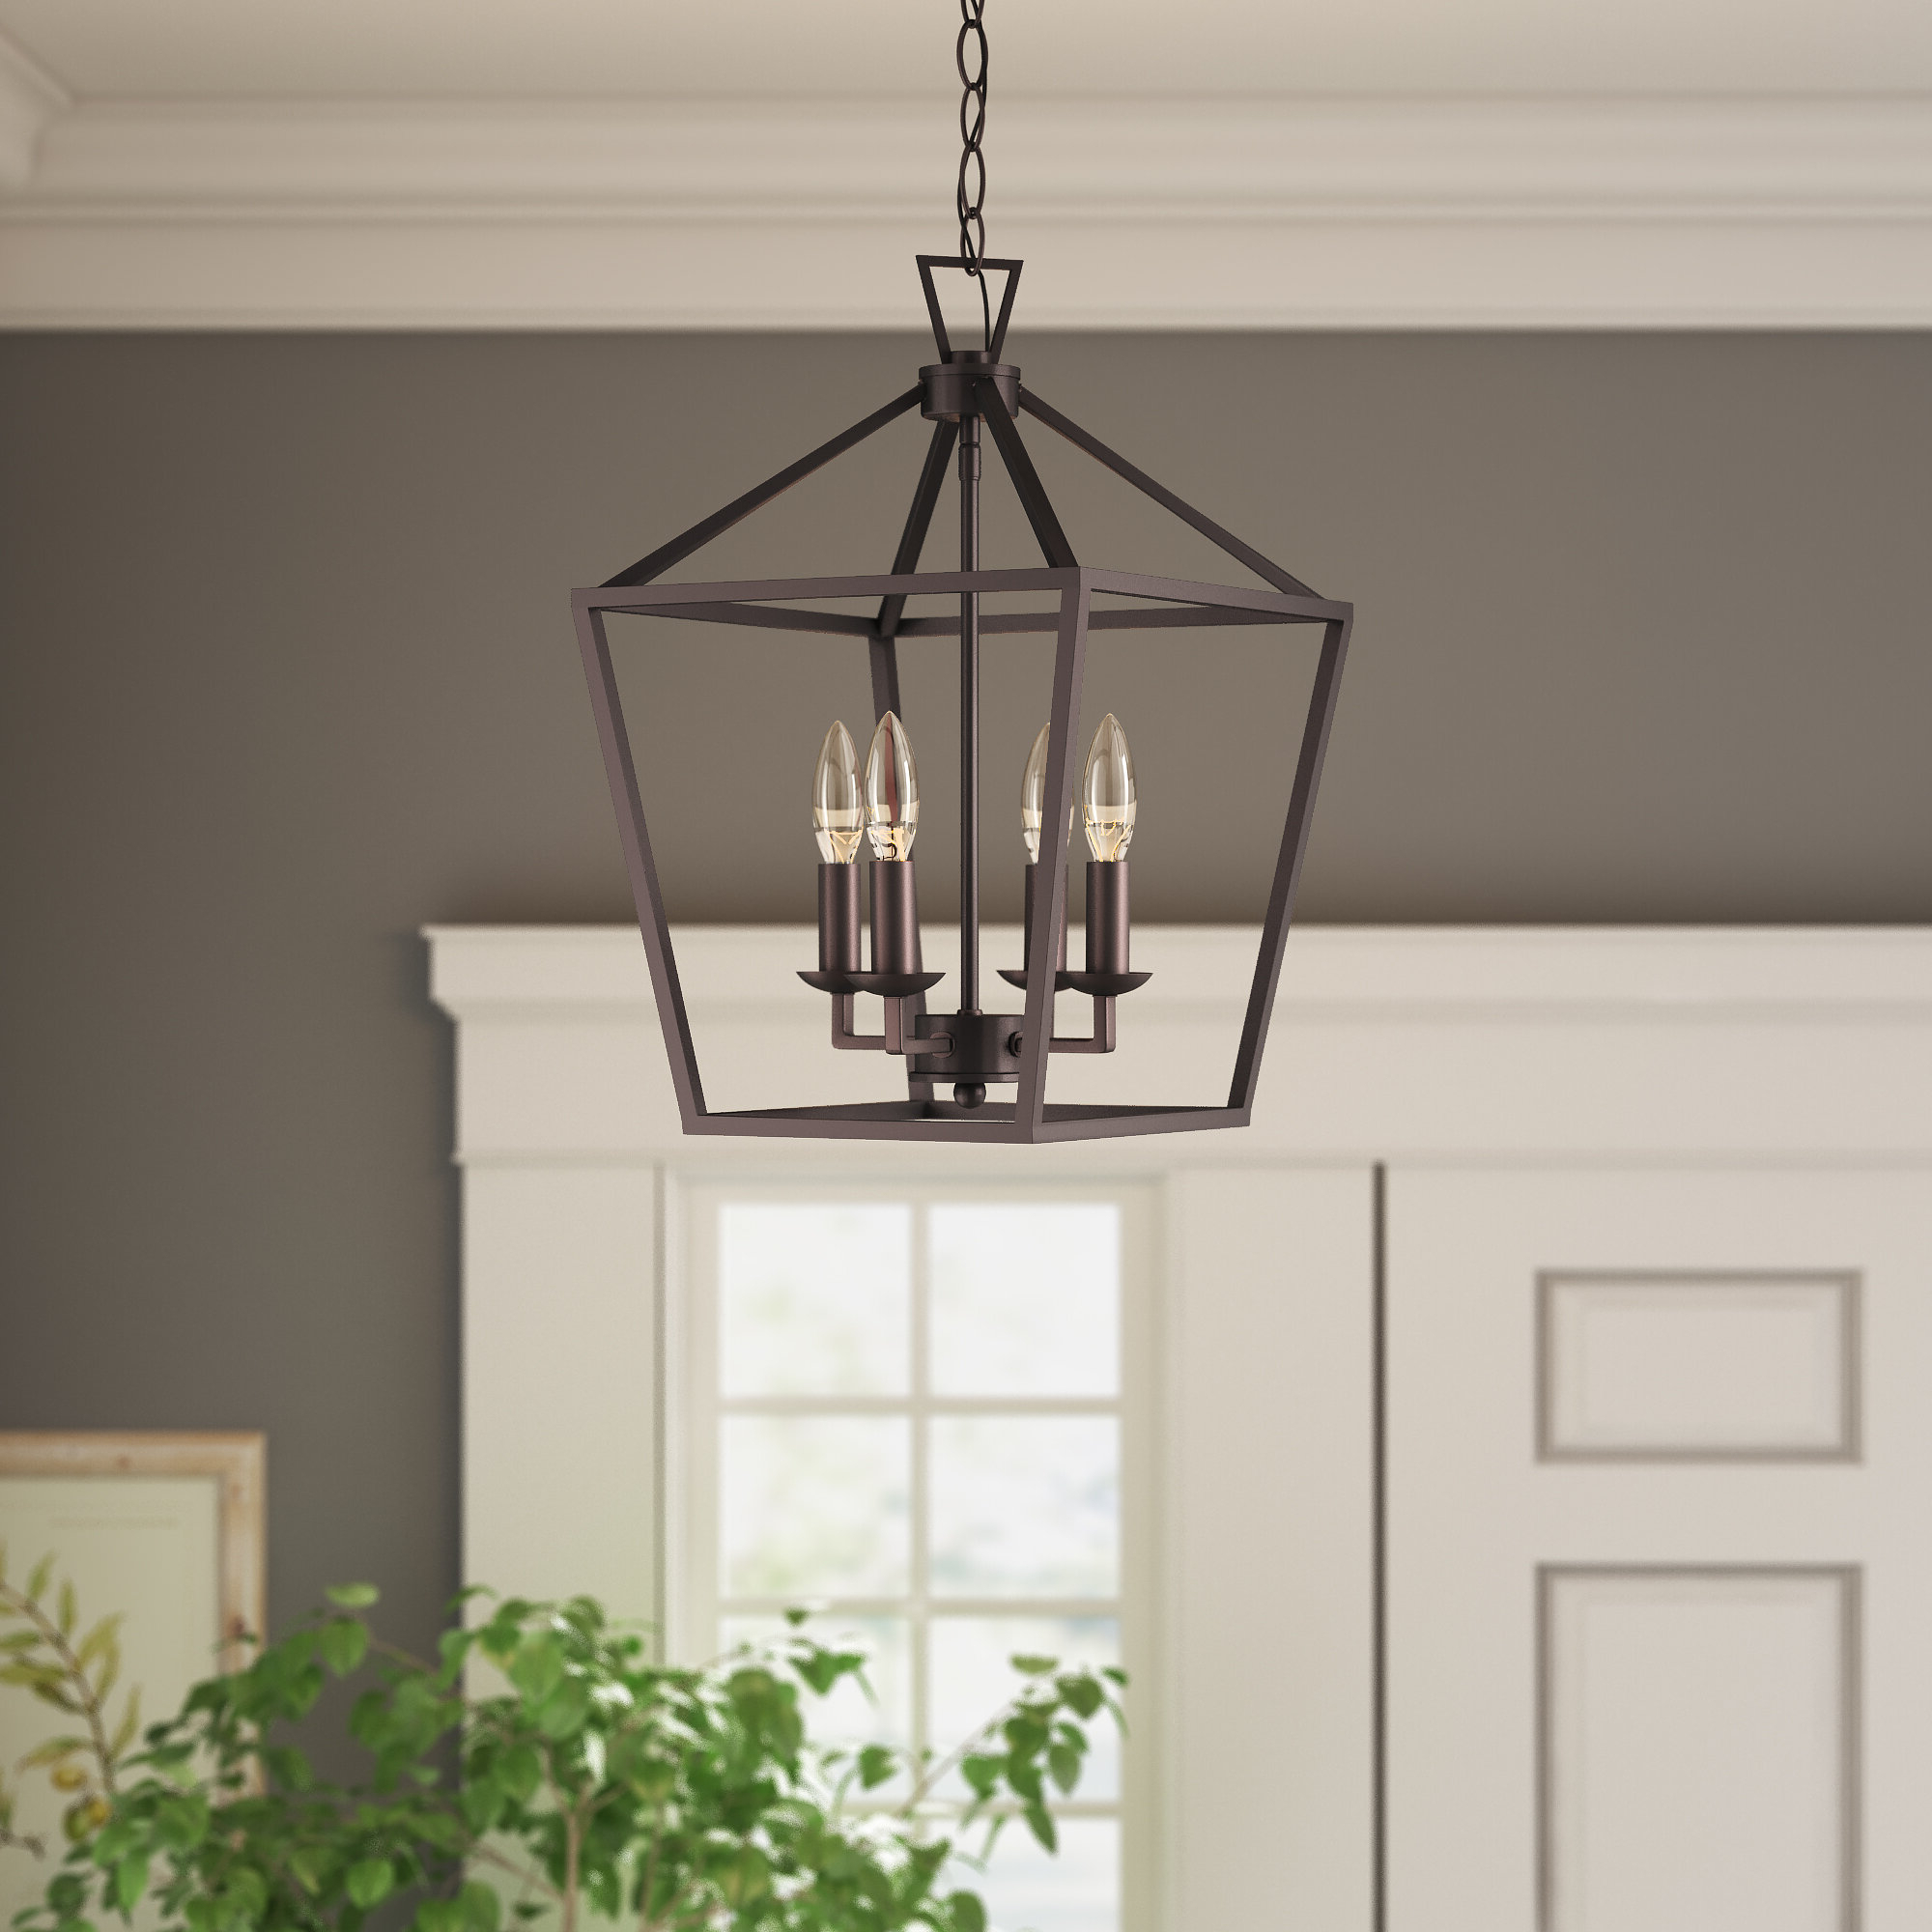 Widely Used Carmen 4 Light Lantern Geometric Pendant Pertaining To Carmen 8 Light Lantern Tiered Pendants (View 18 of 20)